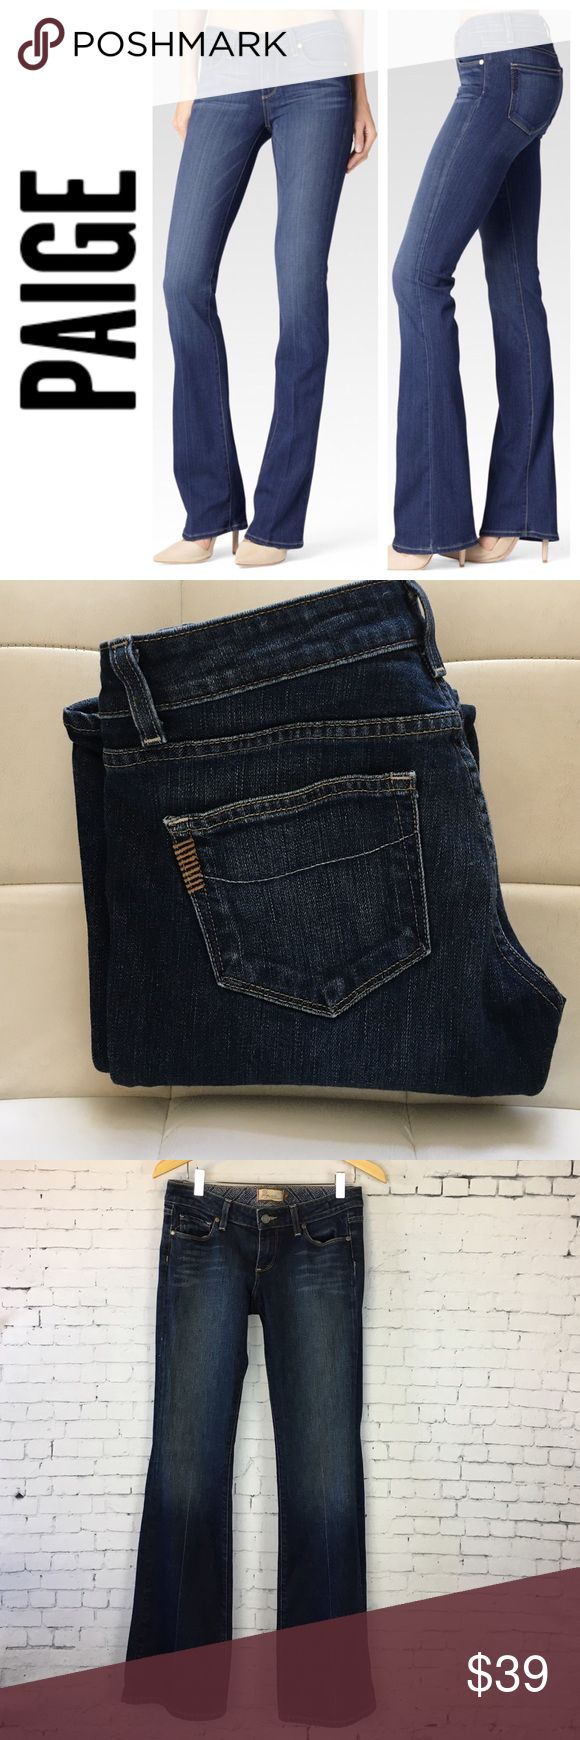 """Paige Laurel Canyon low rise bootcut jeans Beautiful jeans from Paige denim in the low rise bootcut Laurel Canyon style. Very flattering cut that elongates the legs with subtle wiskering in a timeless blue wash. 7"""" rise and 31"""" inseam. Size 27. By Paige Premium Denim. In excellent condition. Paige Jeans Jeans Boot Cut"""